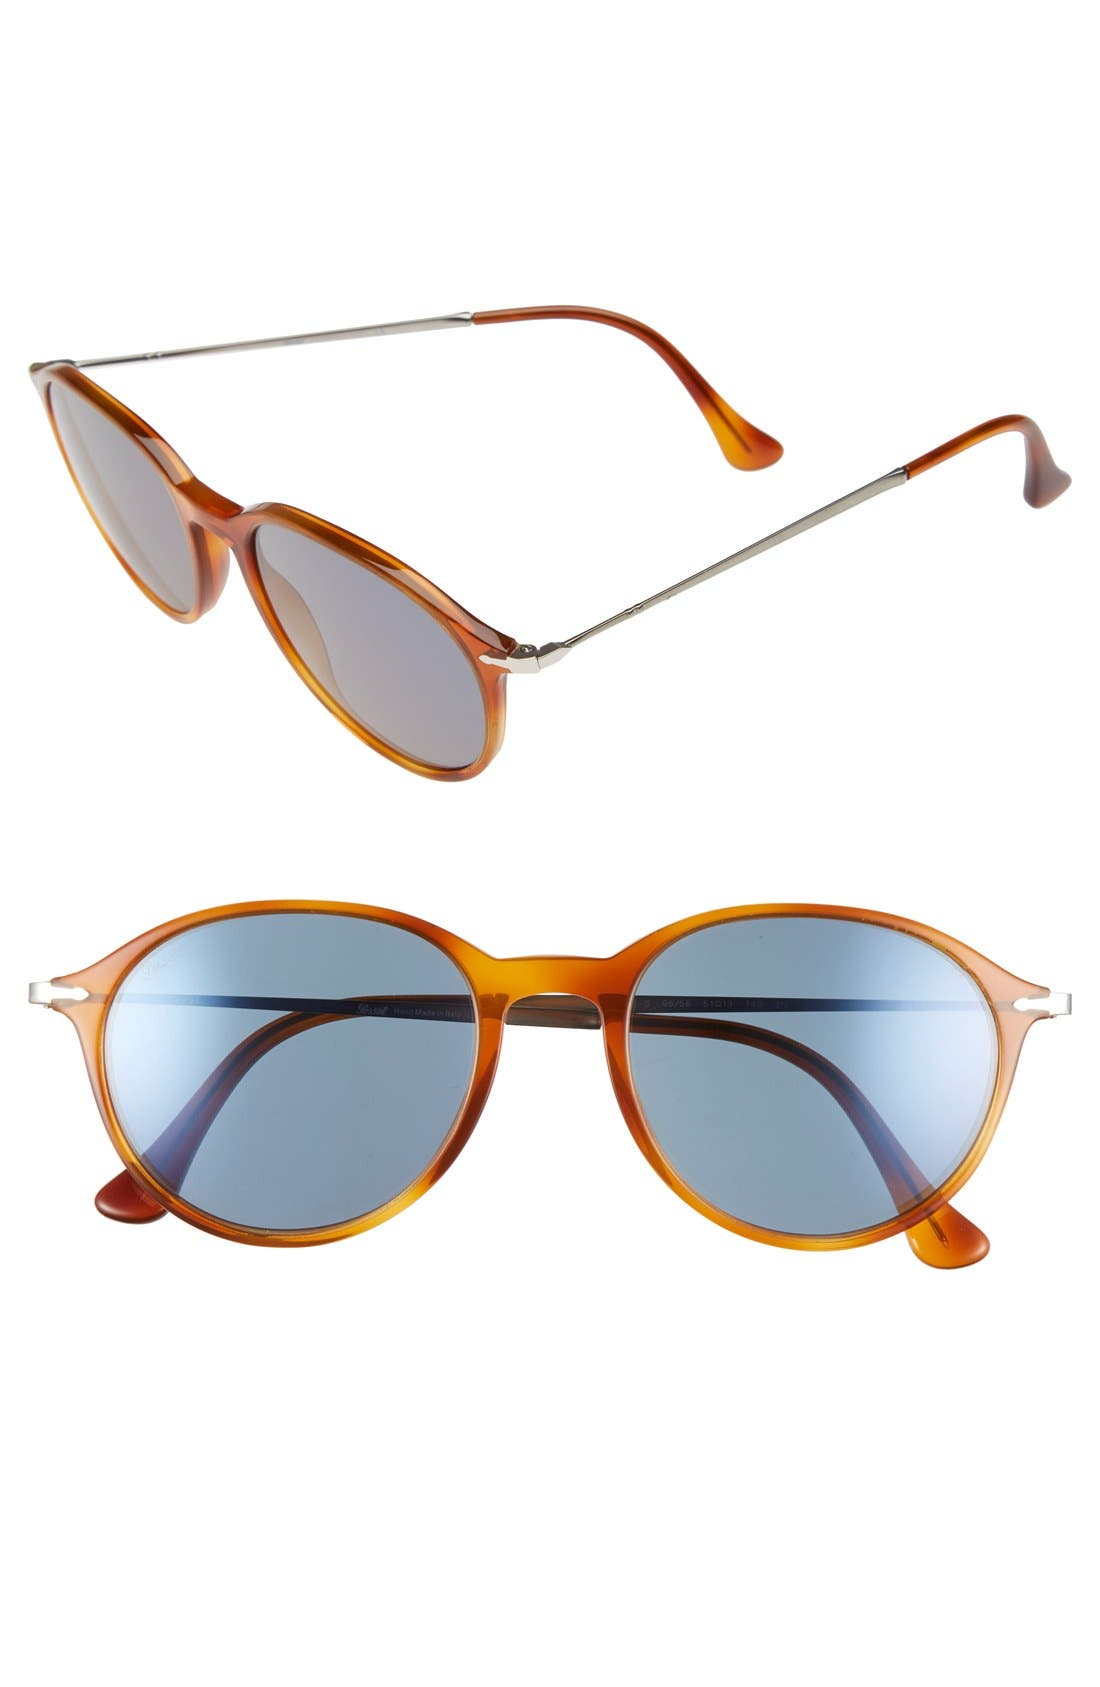 Main Image - Persol 51mm Sunglasses